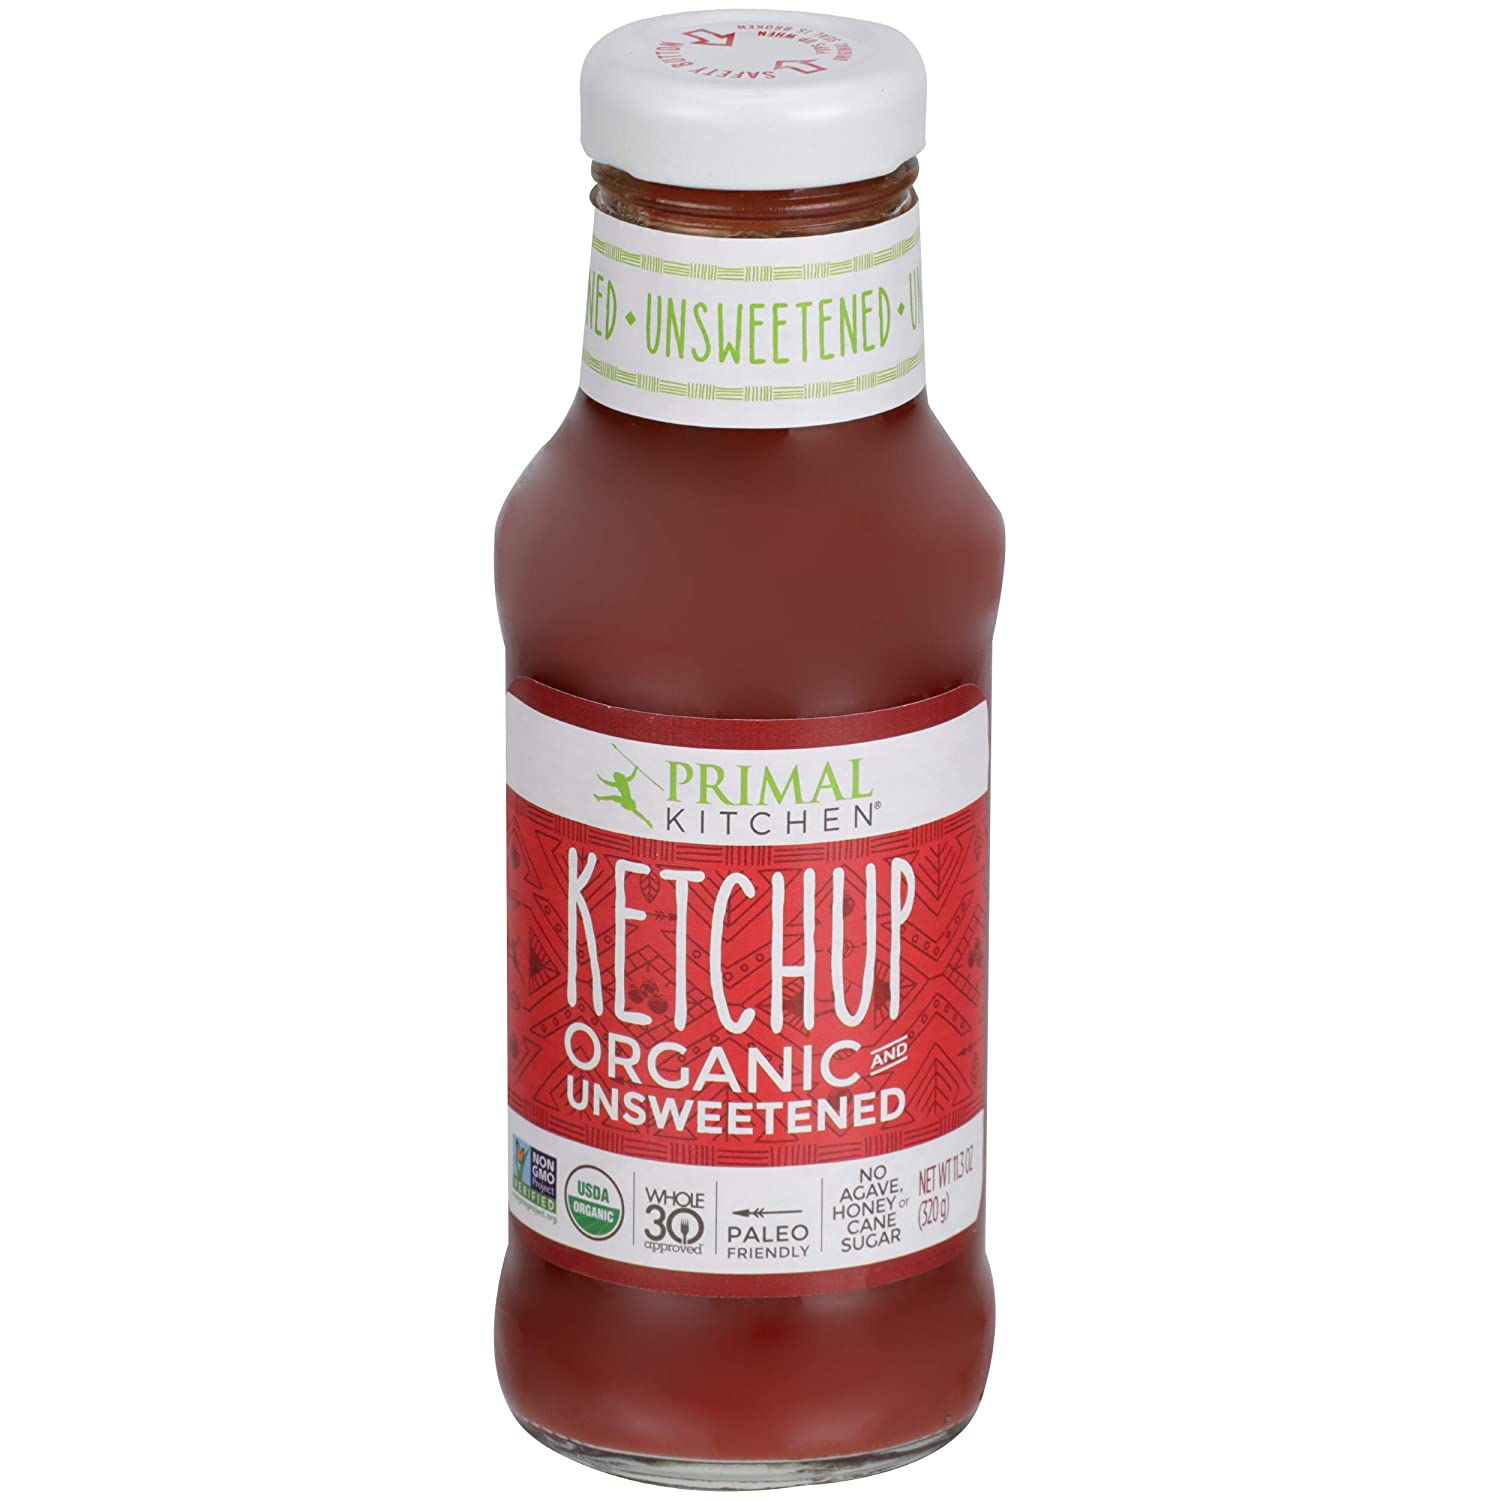 Primal Kitchen Organic Unsweetened oz 11.3 Limited Special Price Ketchup Popular brand in the world